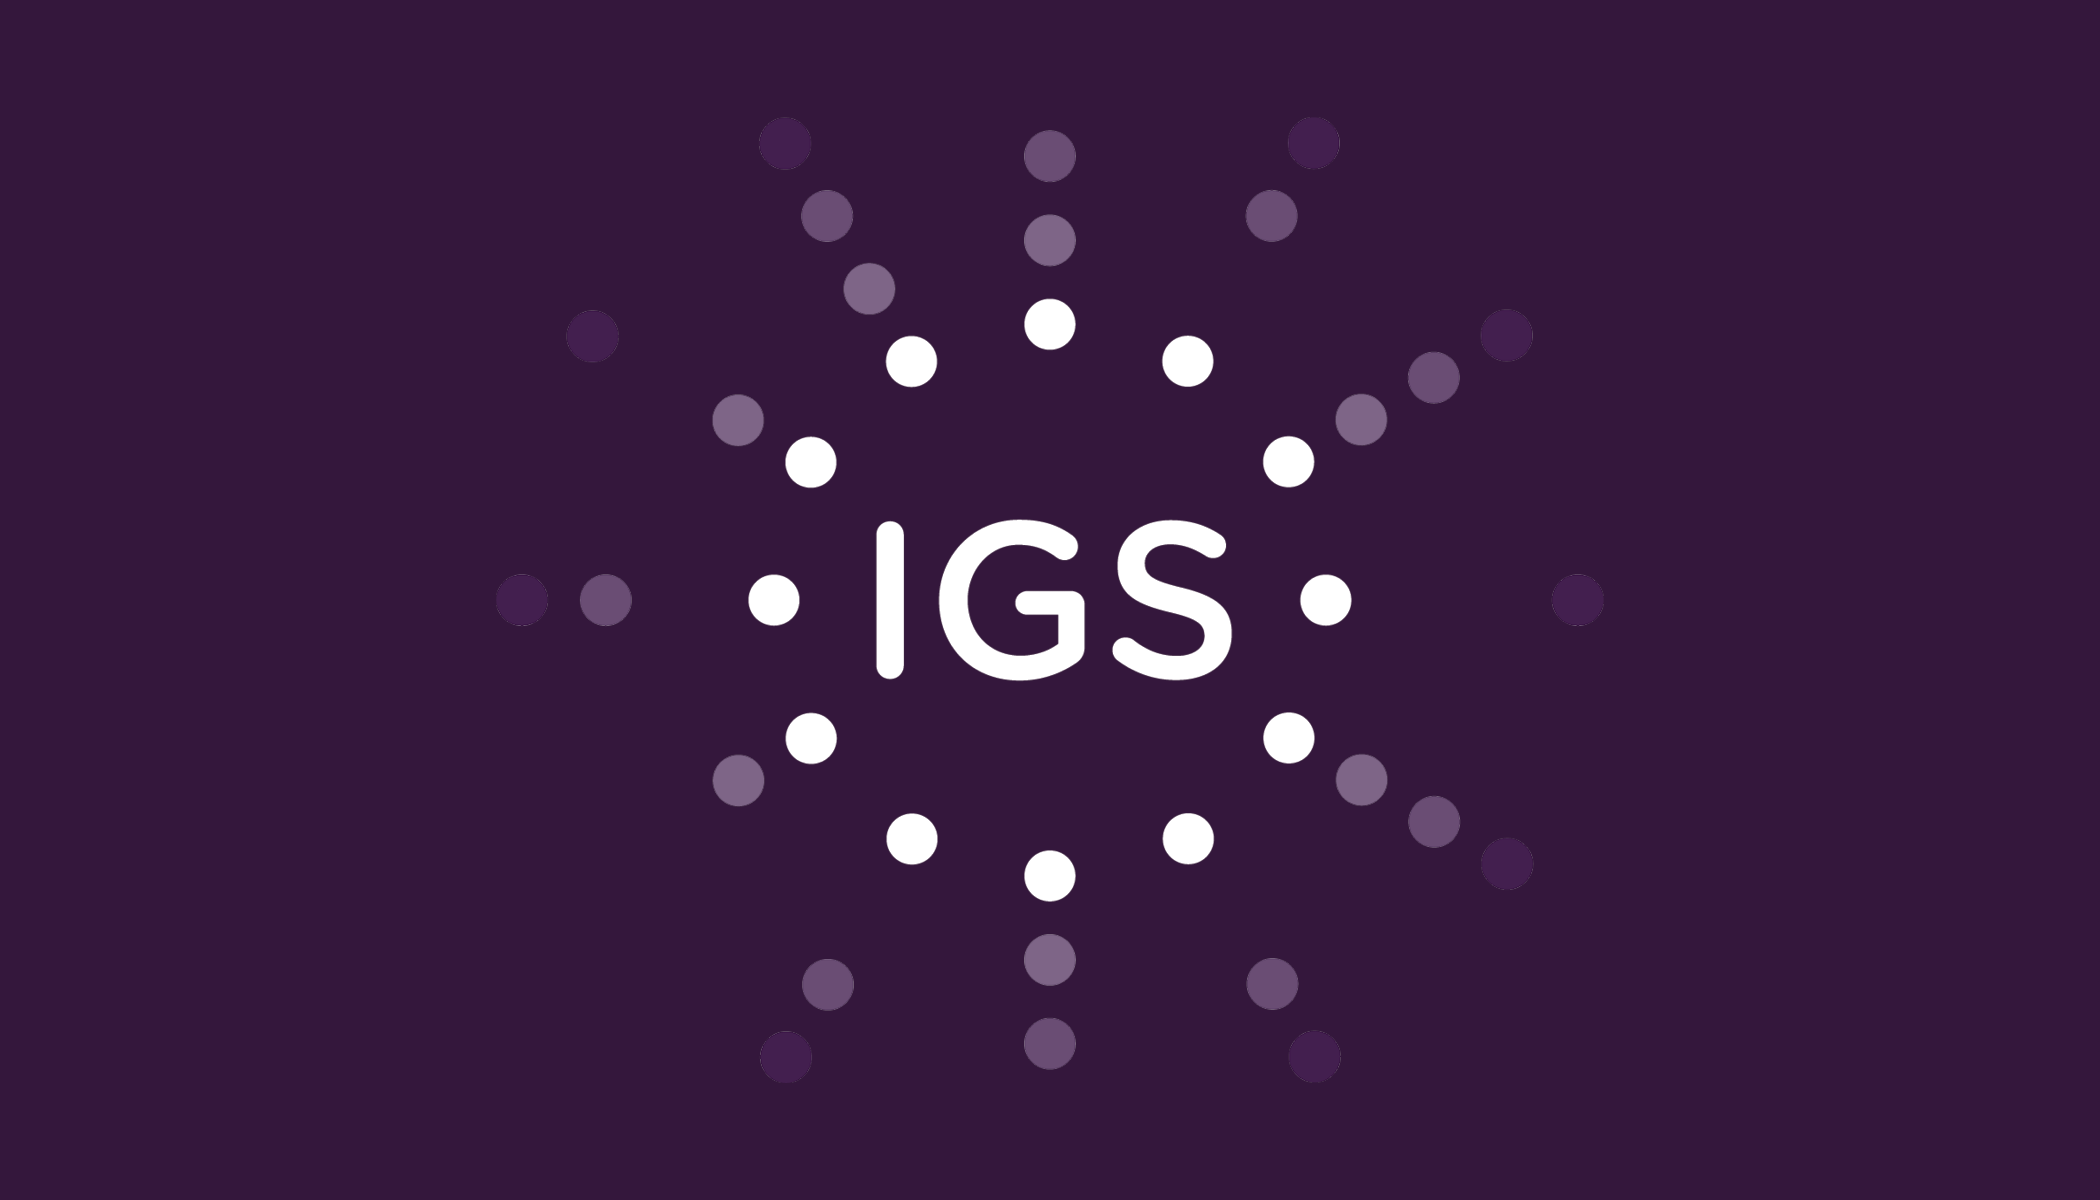 IGS-Cover-002_2021-01-19-121918.png